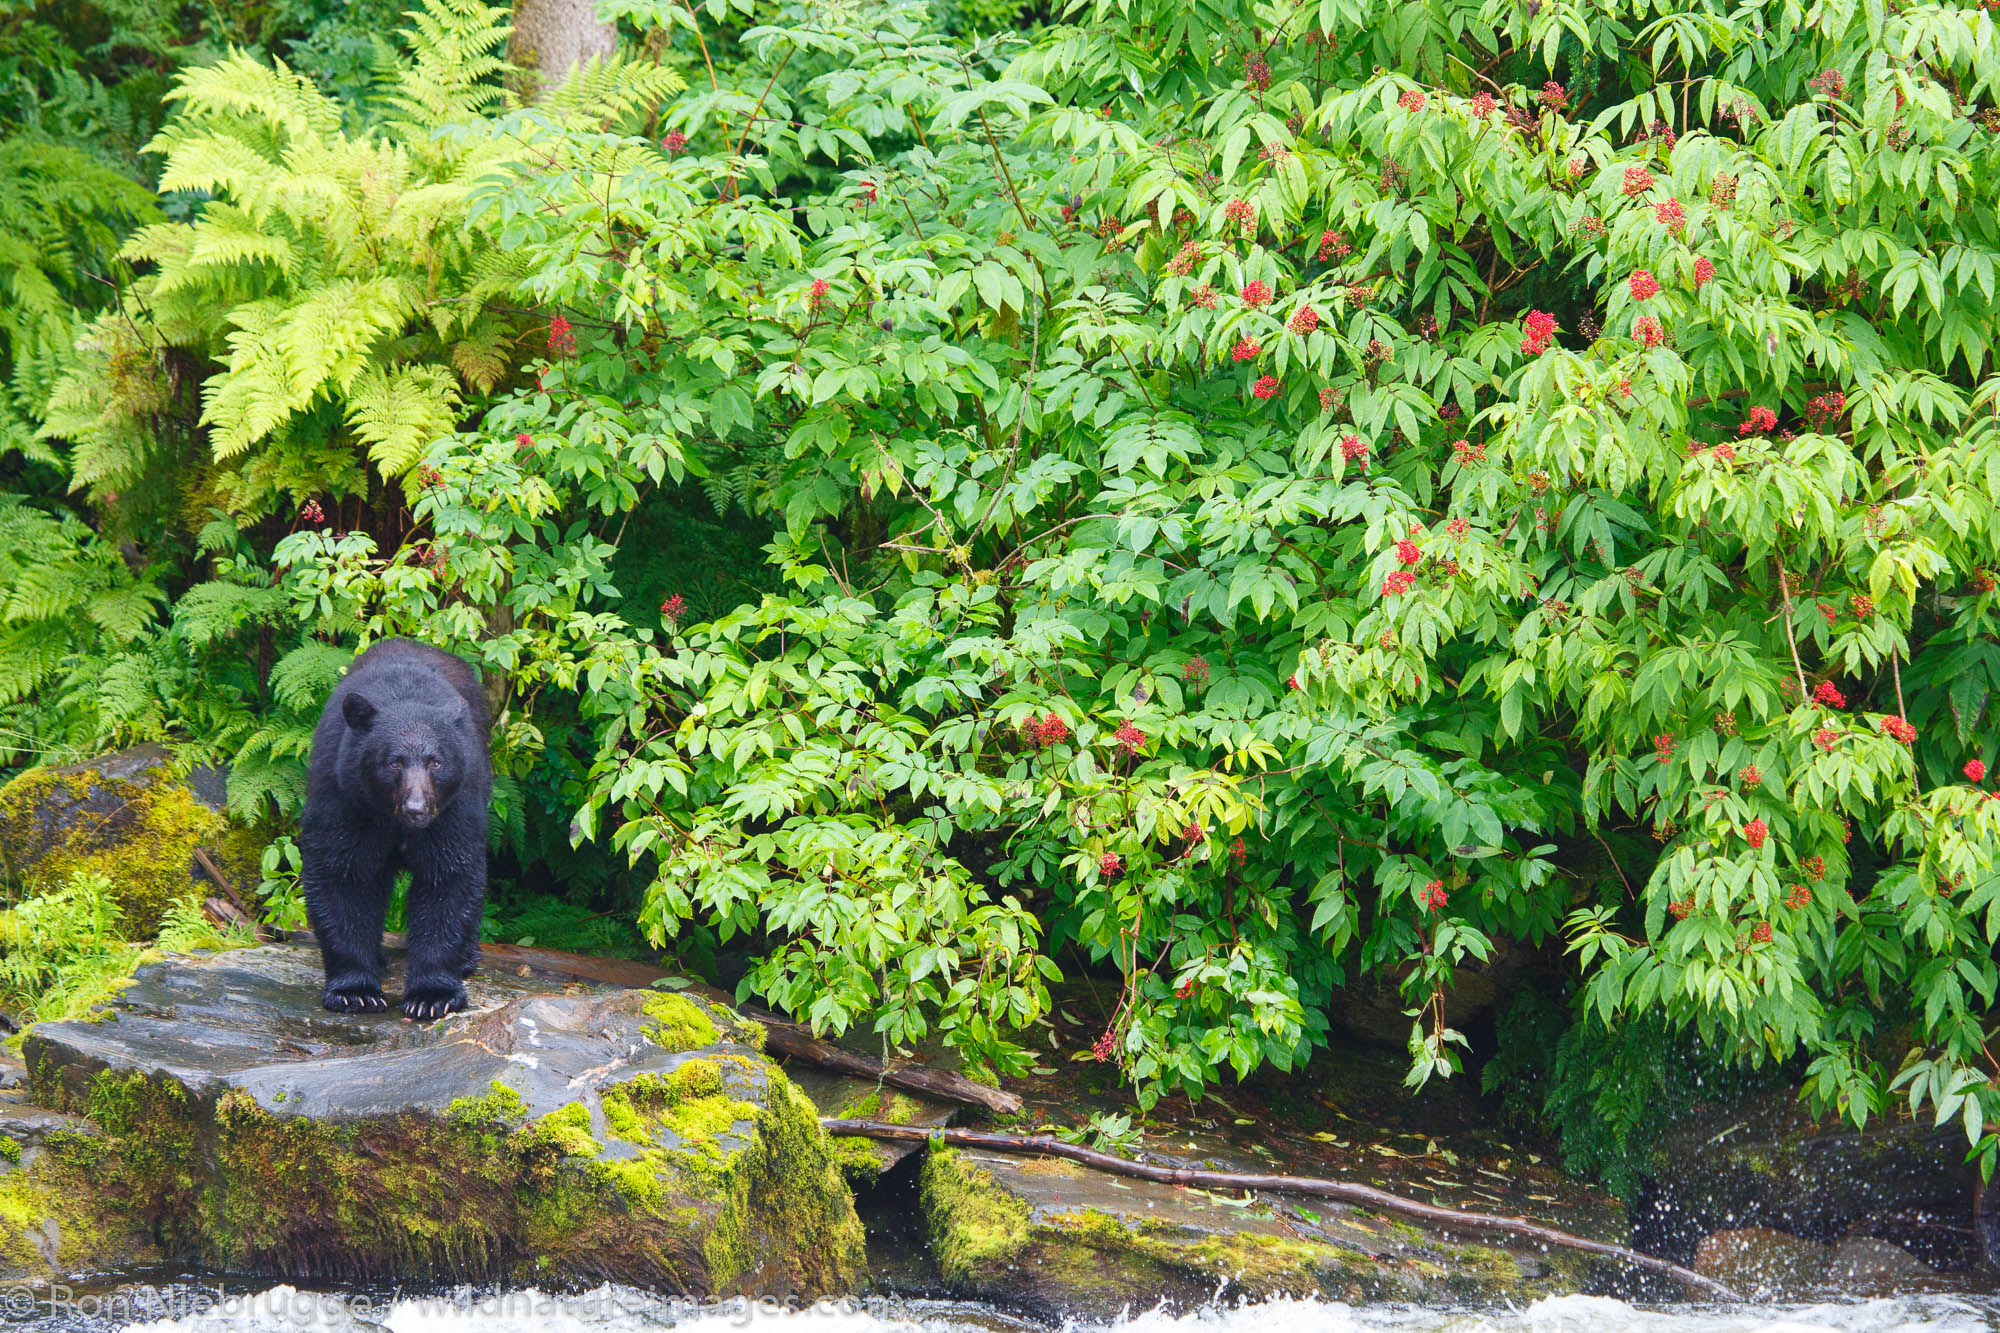 Black bears at the Neets Bay Hatchery,Tongass National Forest, near Ketchikan, Alaska.